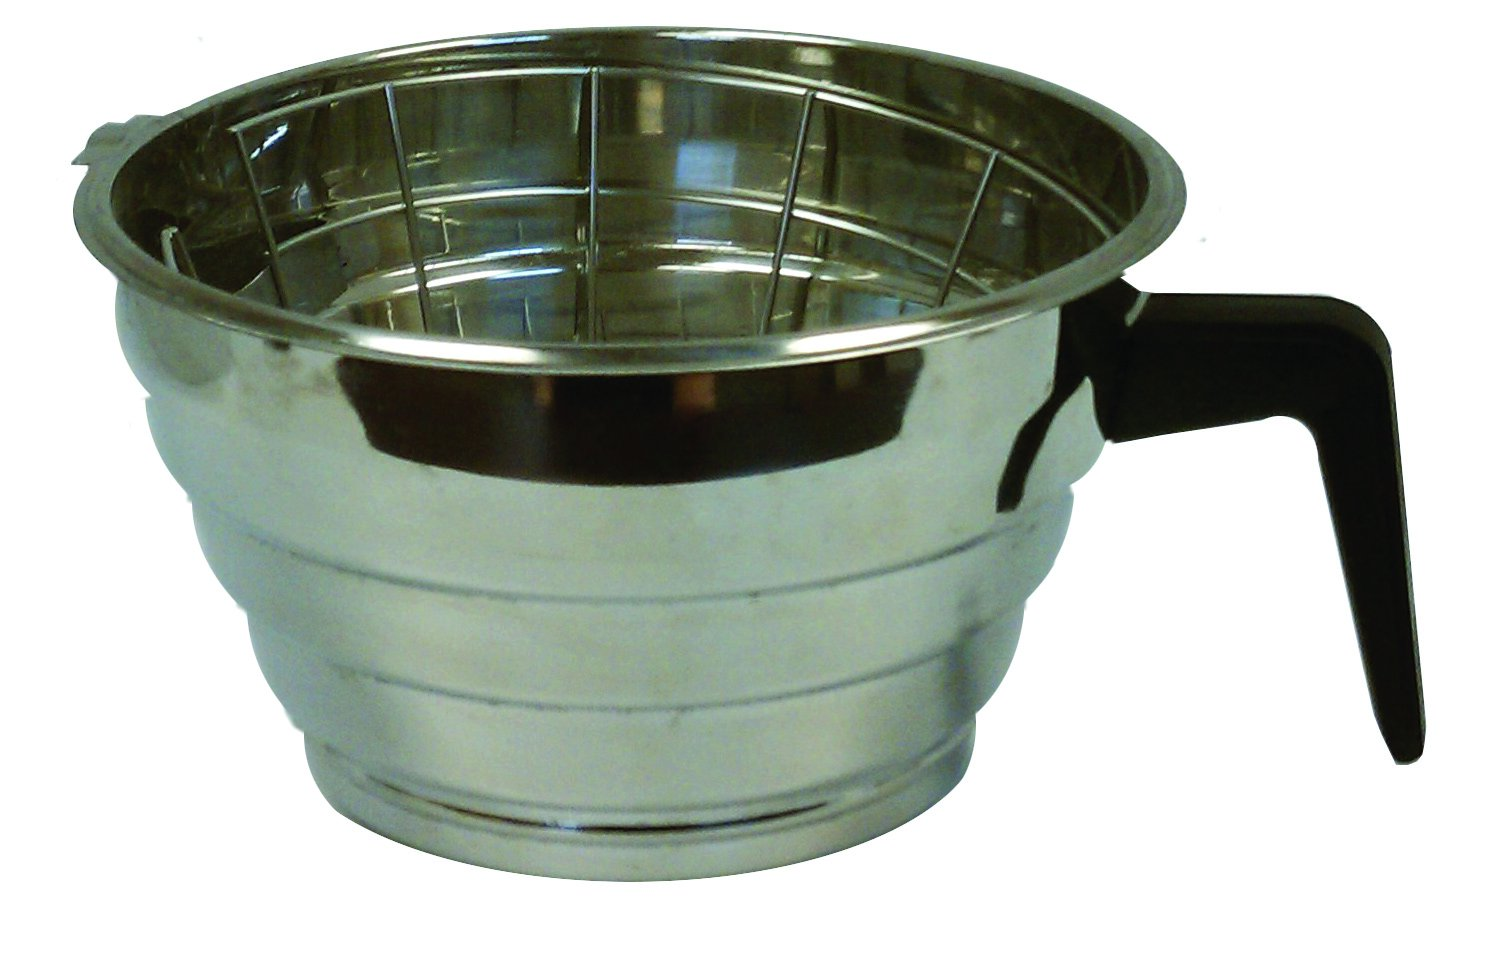 Bloomfield 8707-6 Brew Basket for Decanter Brewers, Stainless Steel Bloomfield Worldwide a division of The Star Group